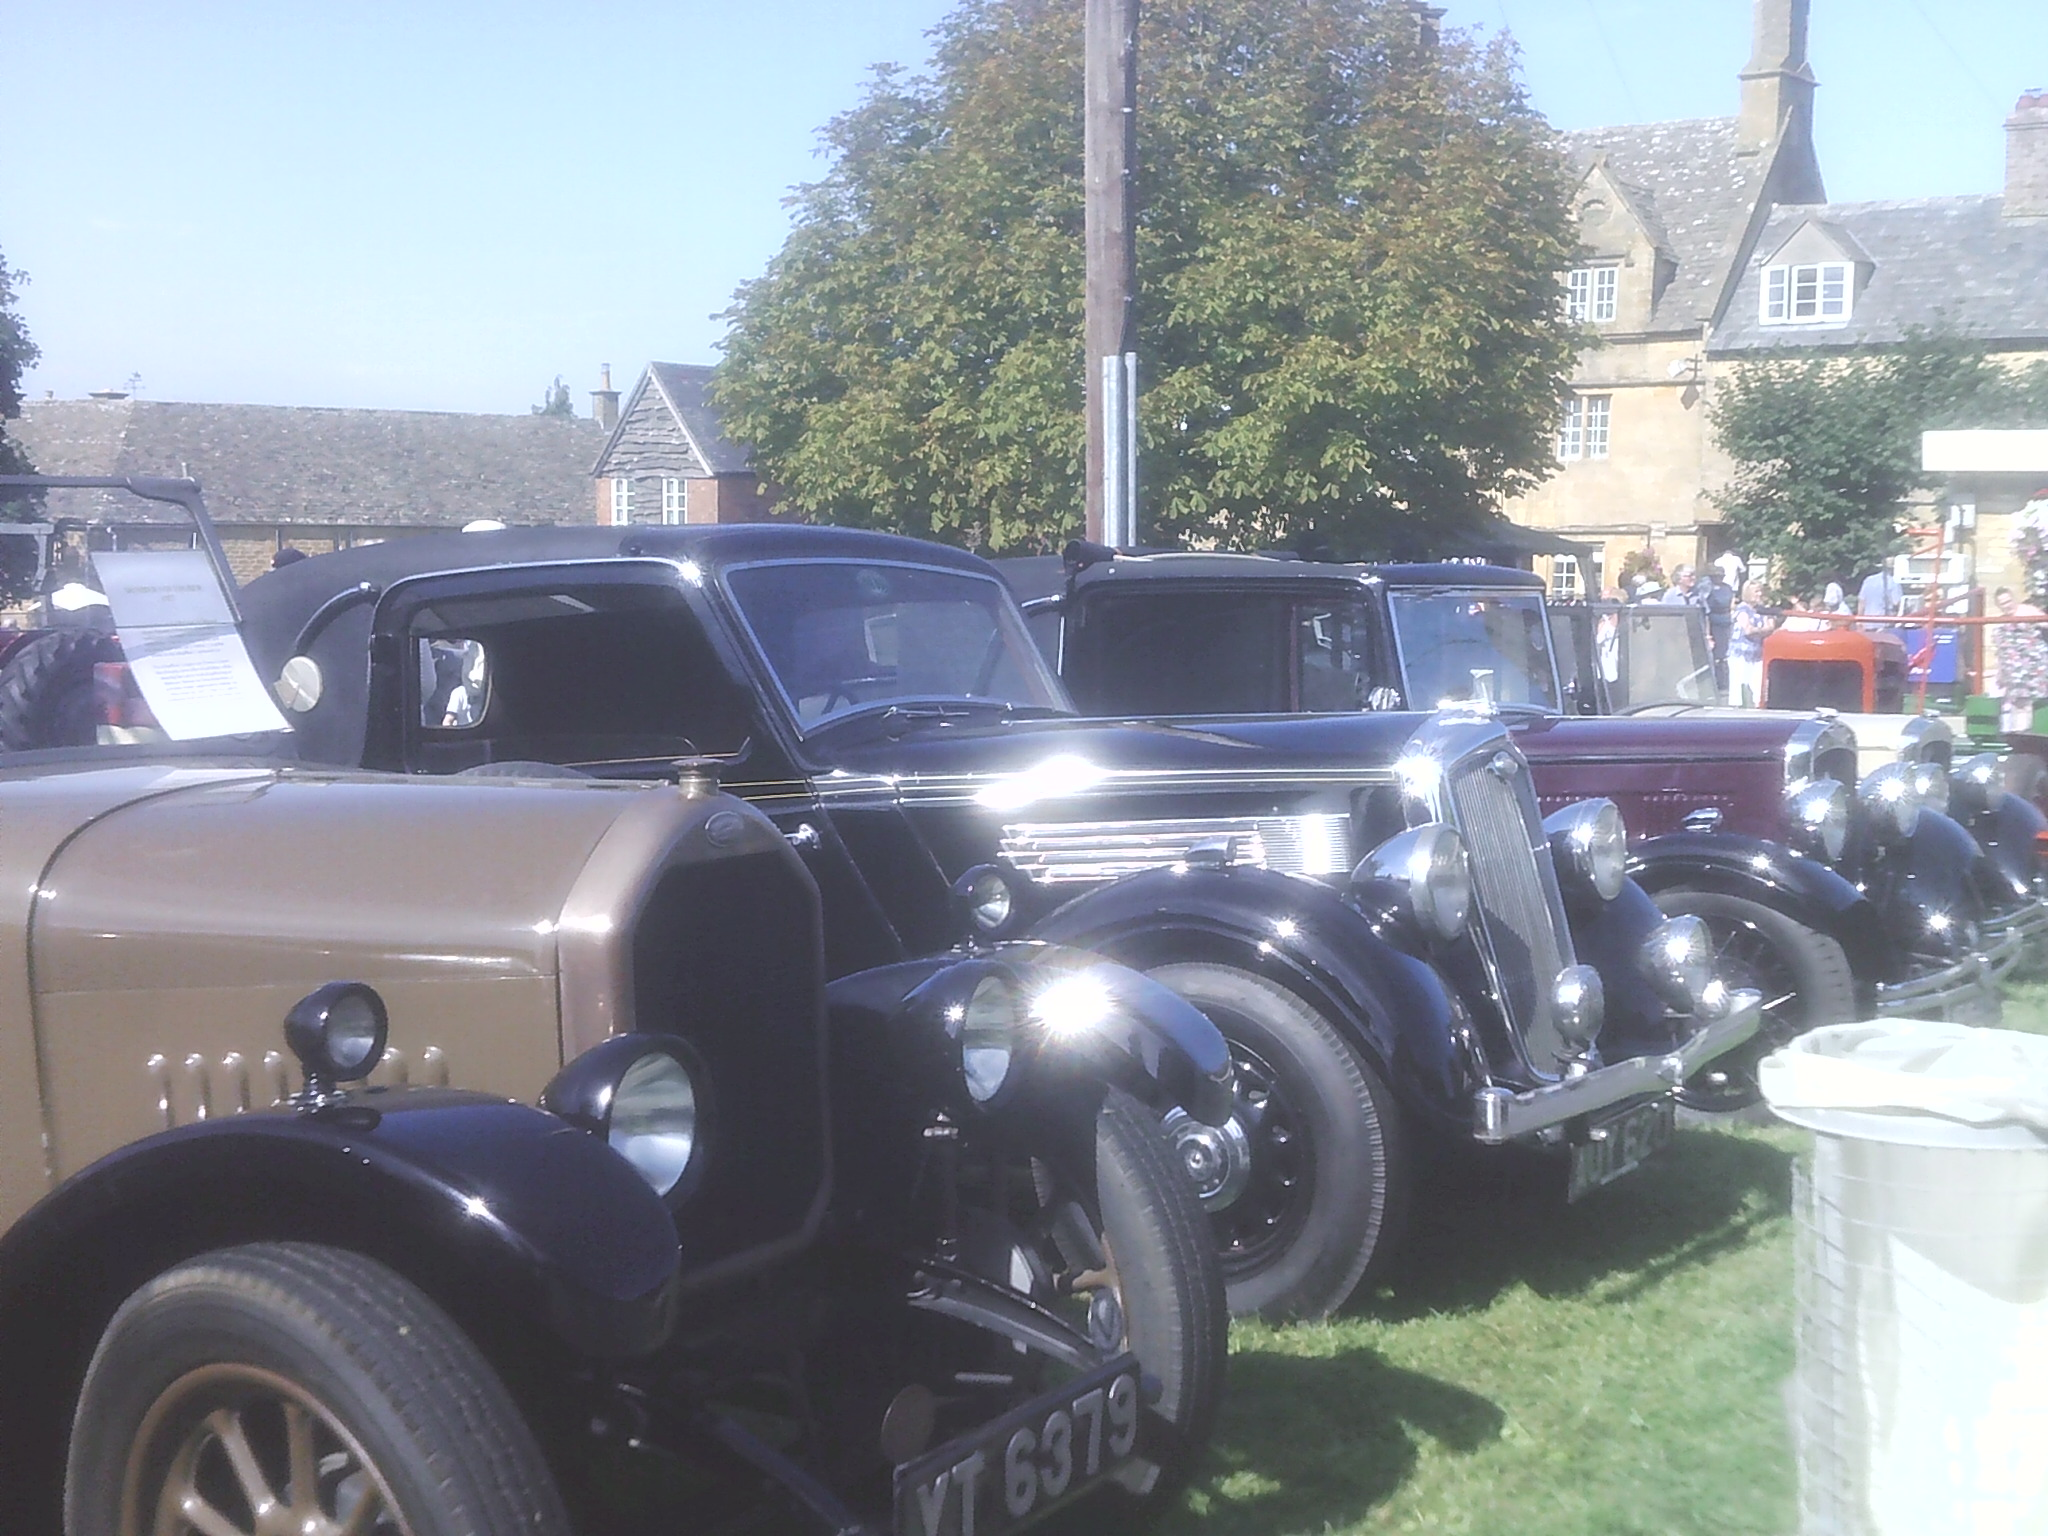 Vintage car headlights at the Willersey Show